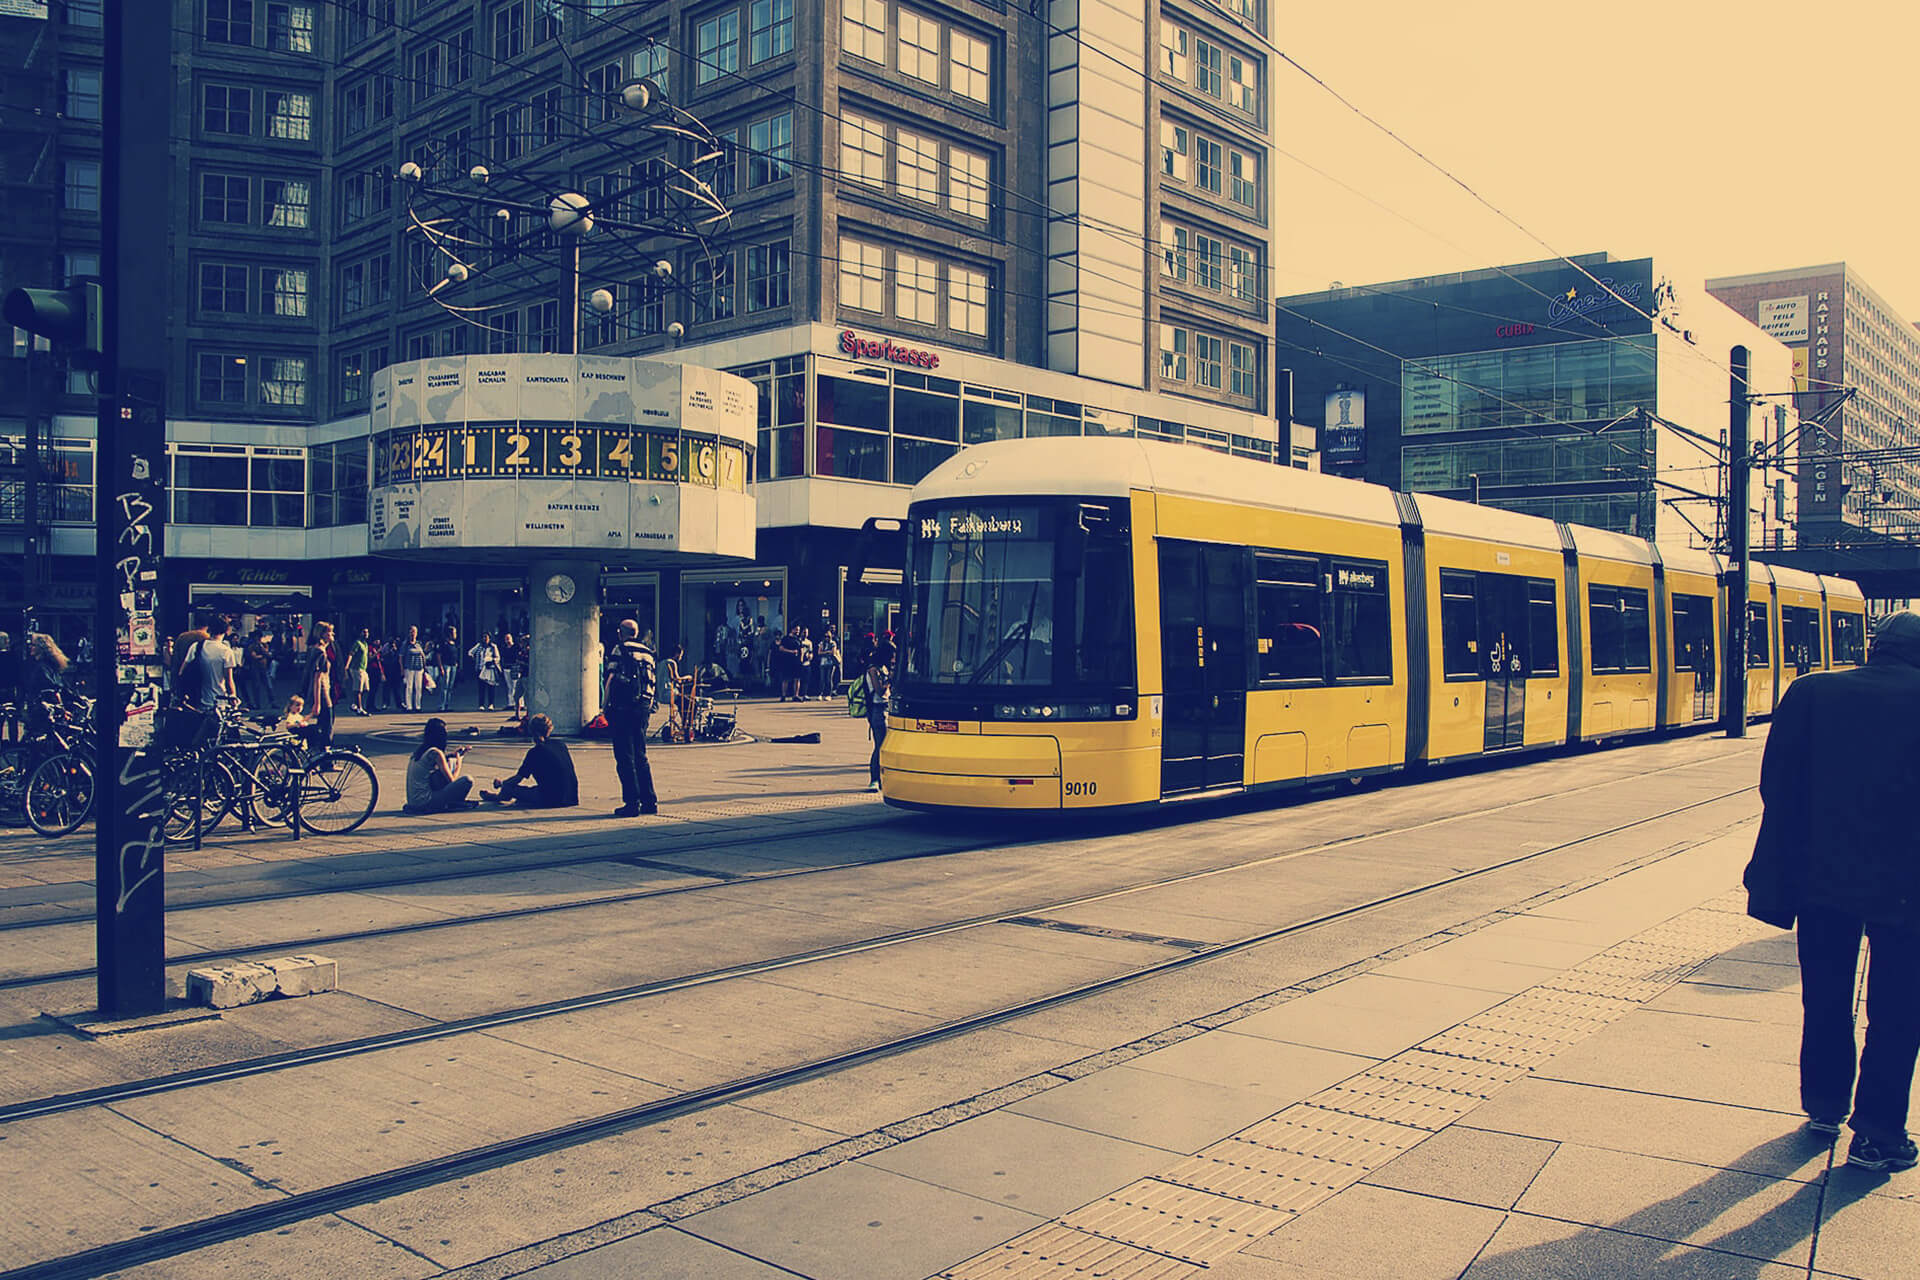 A filtered photo of a tram in central Berlin